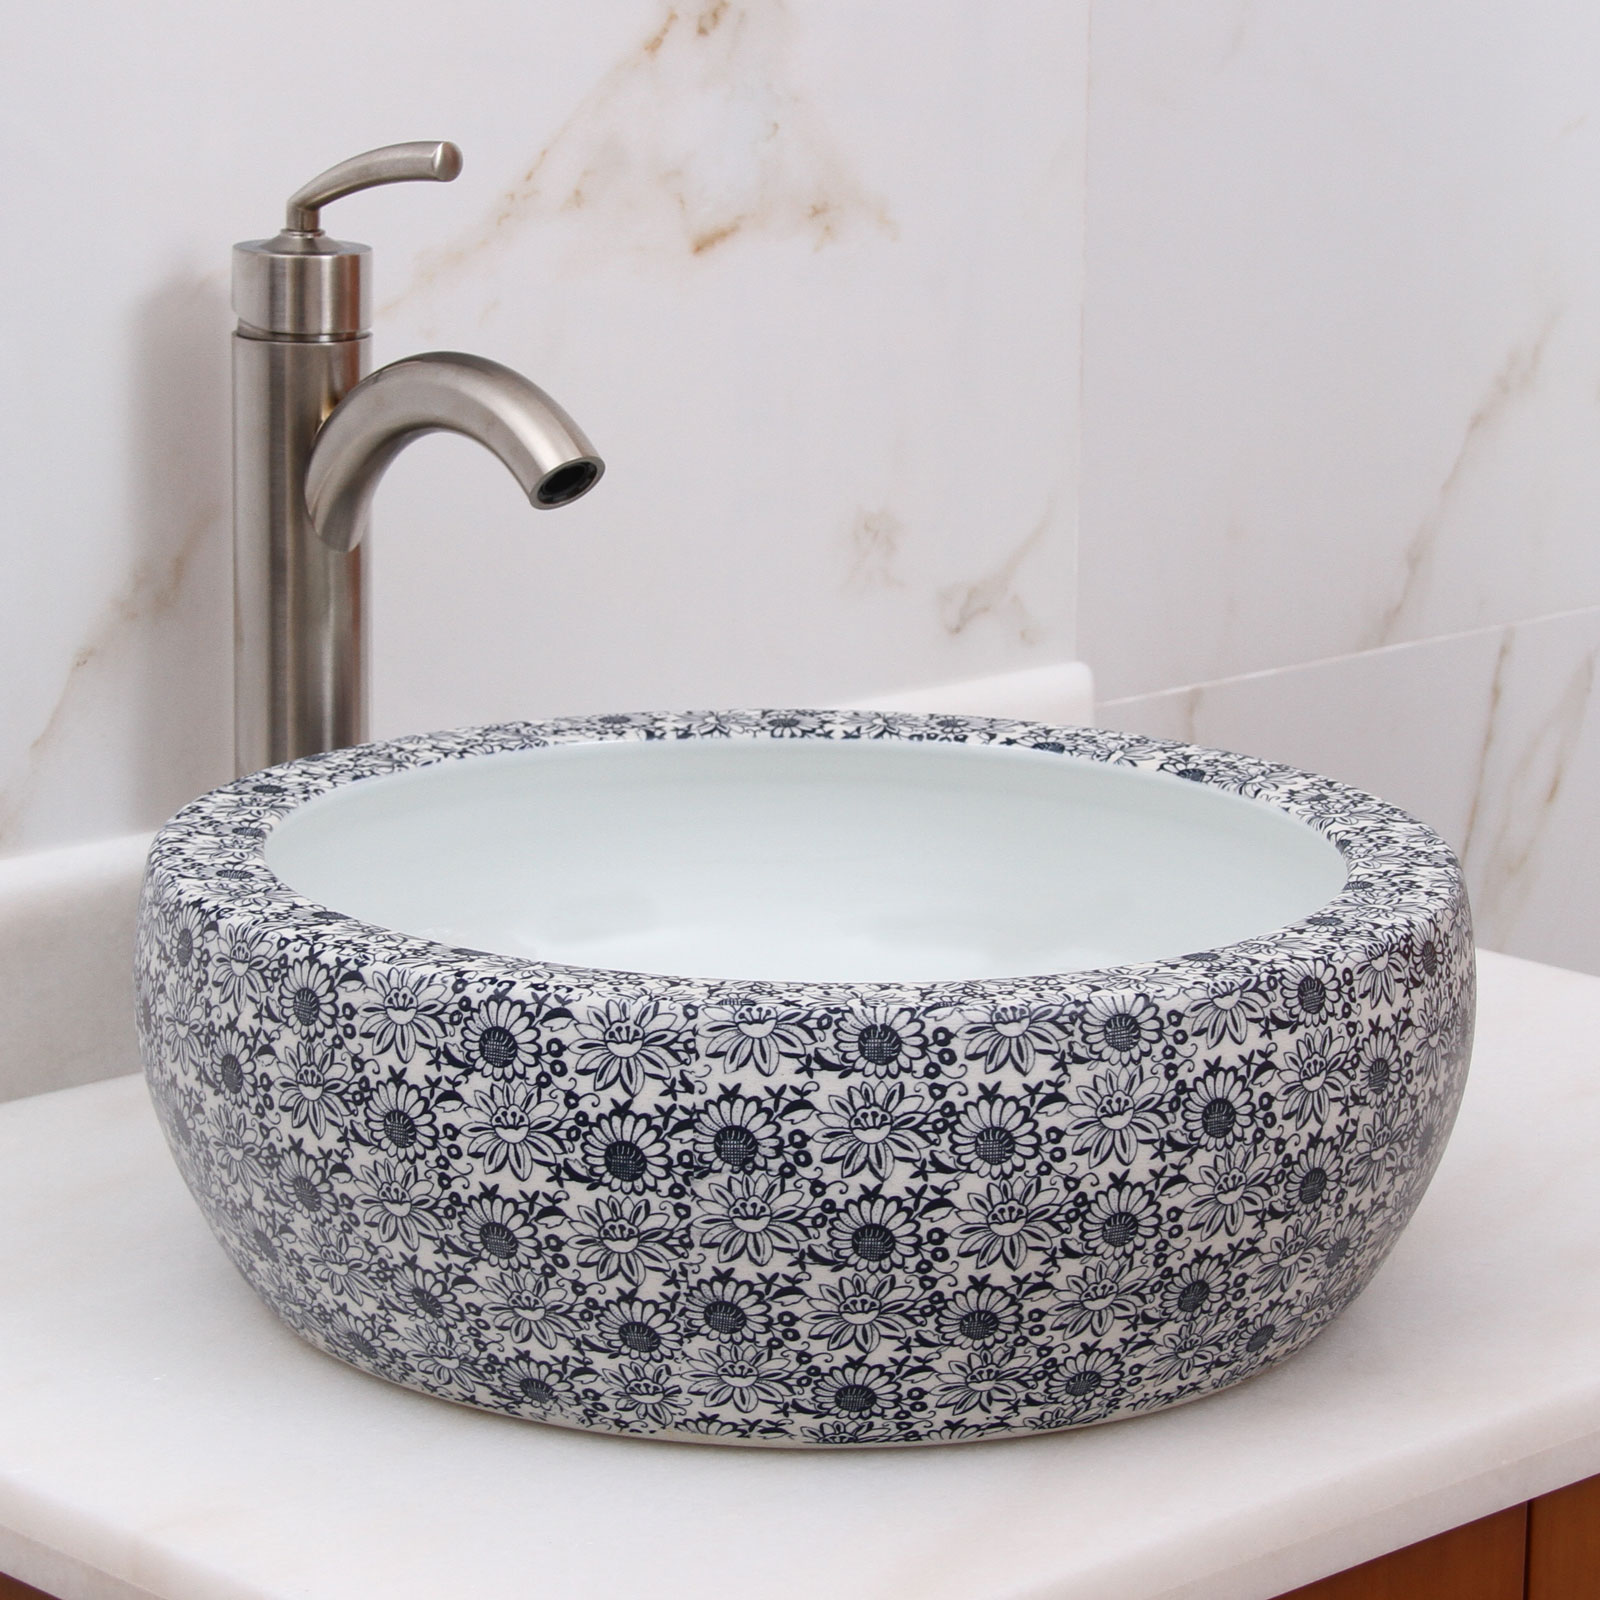 Vessel sink as a completely unique element in the bathroom